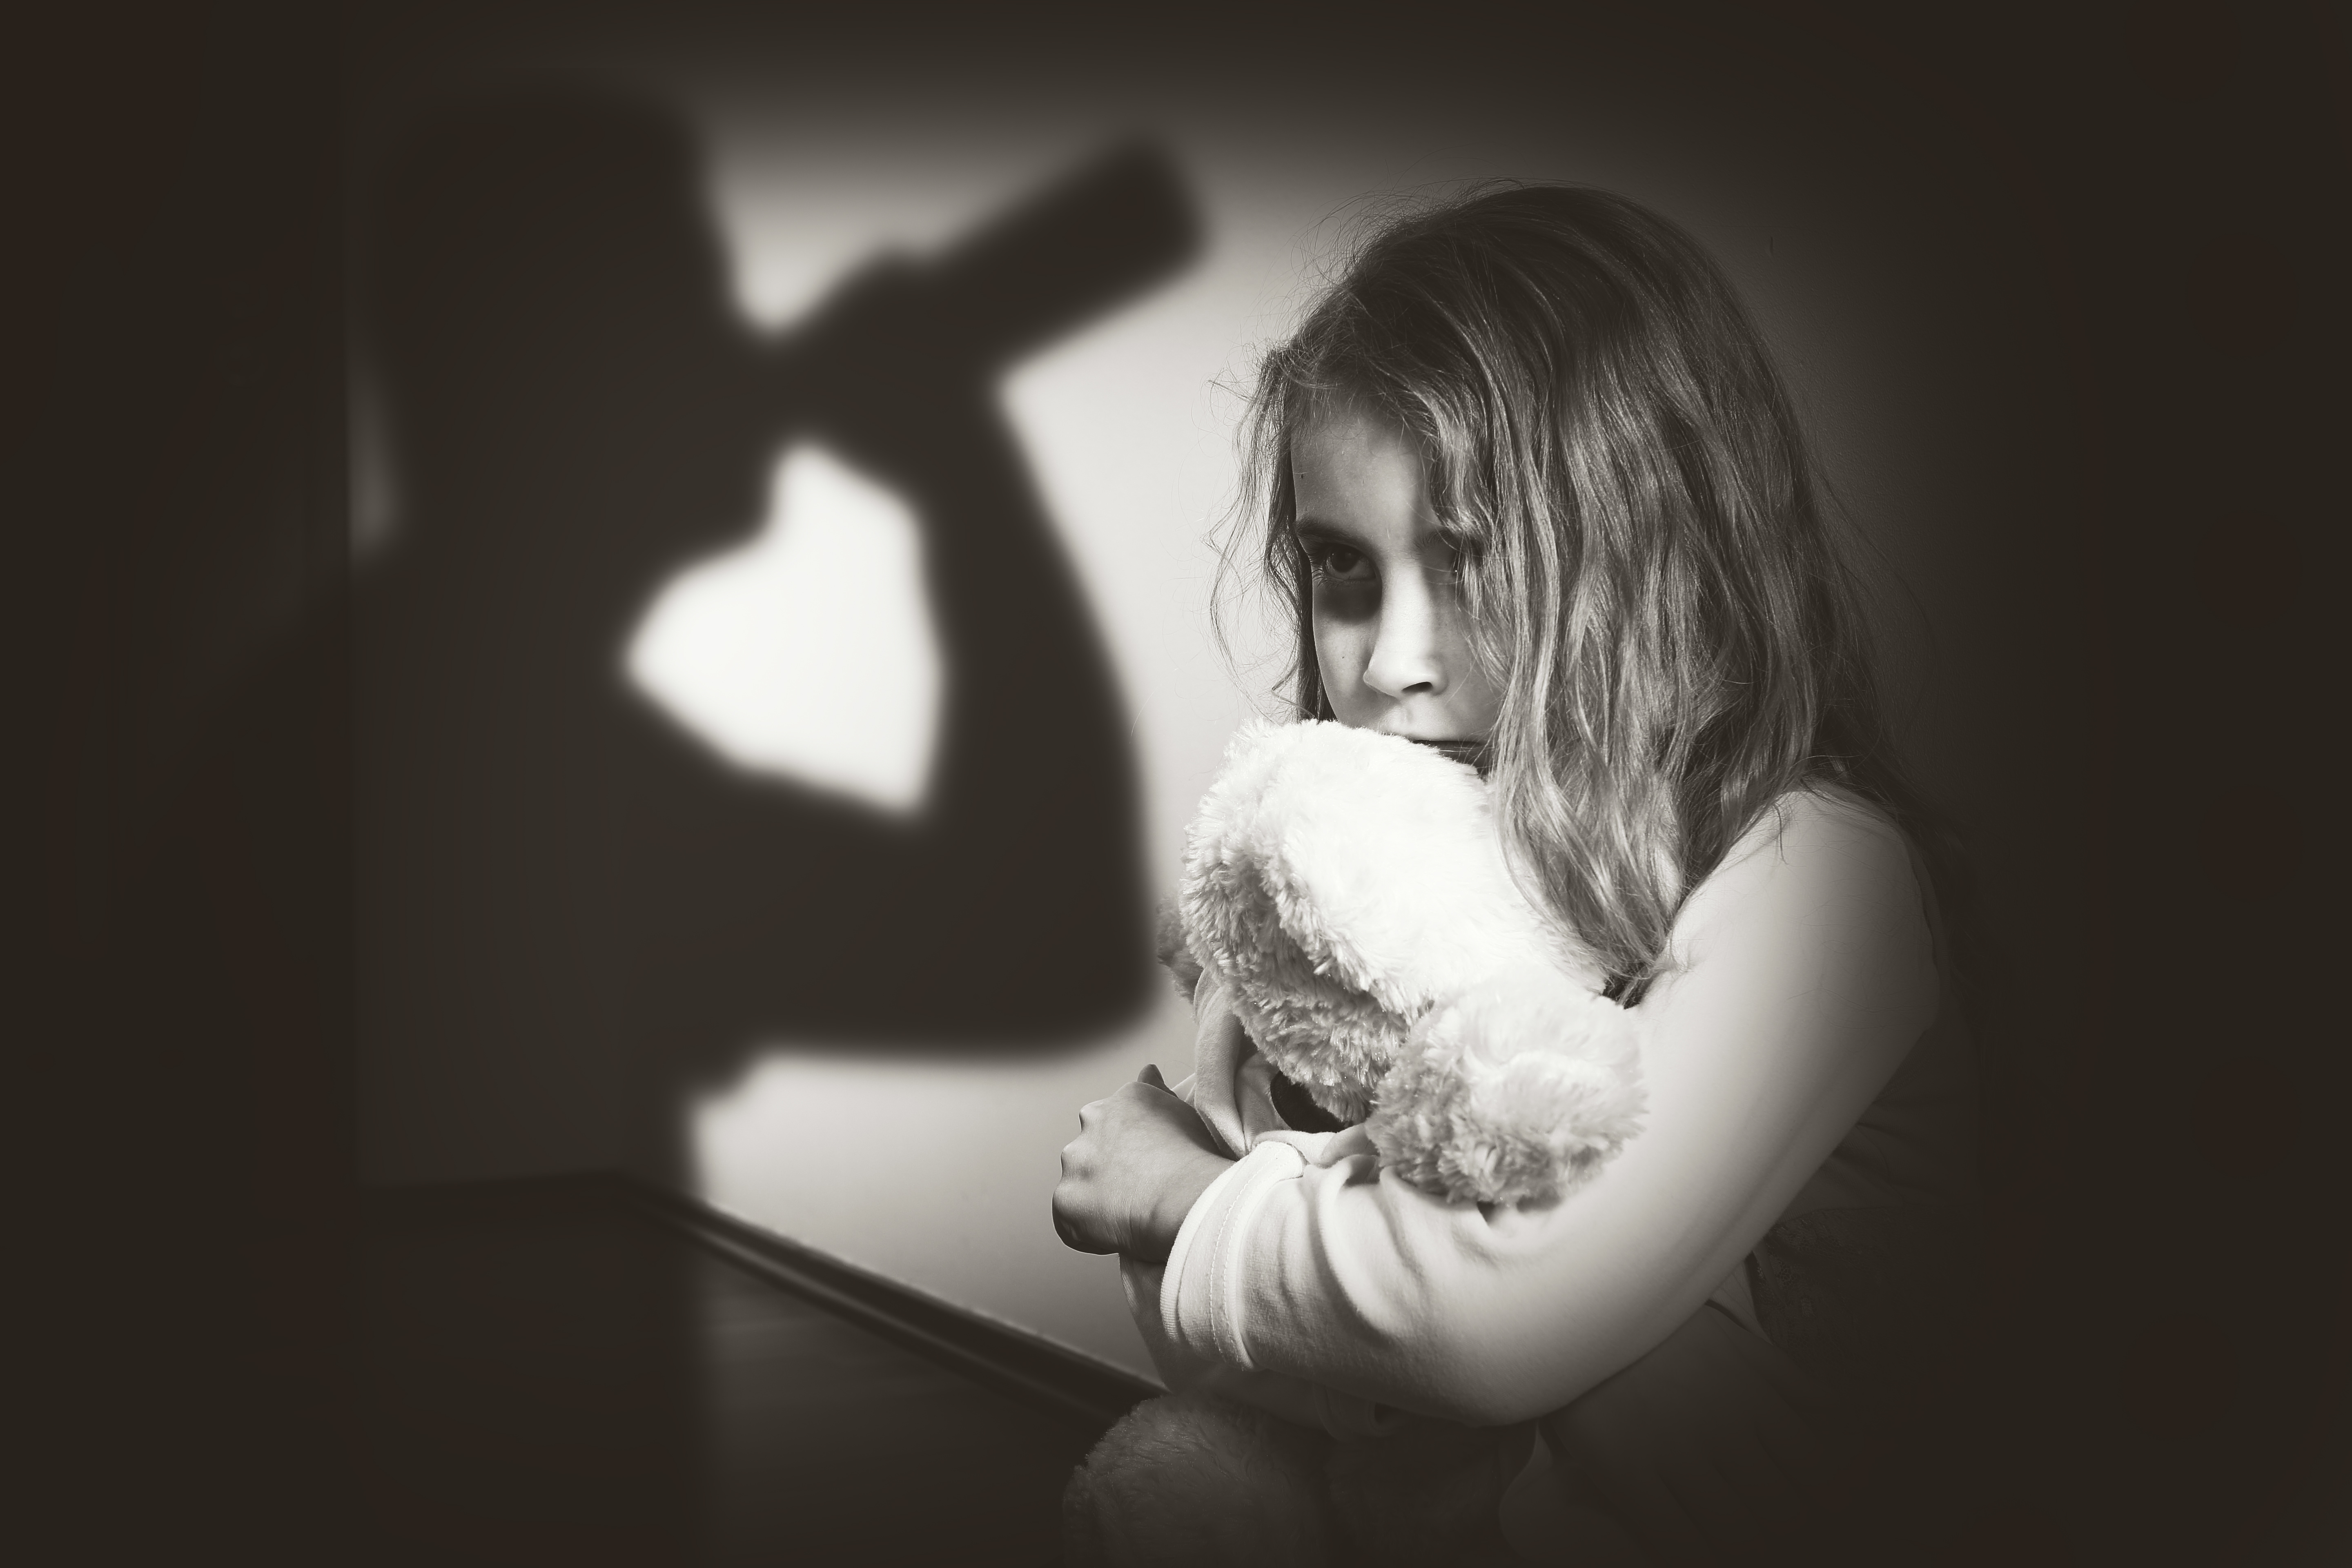 the image of abuse in society Fathers, mothers, single parents, straight couples, gay couples, brothers, sisters, nephews, cousins, aunts drug and alcohol abuse can destroy rel.